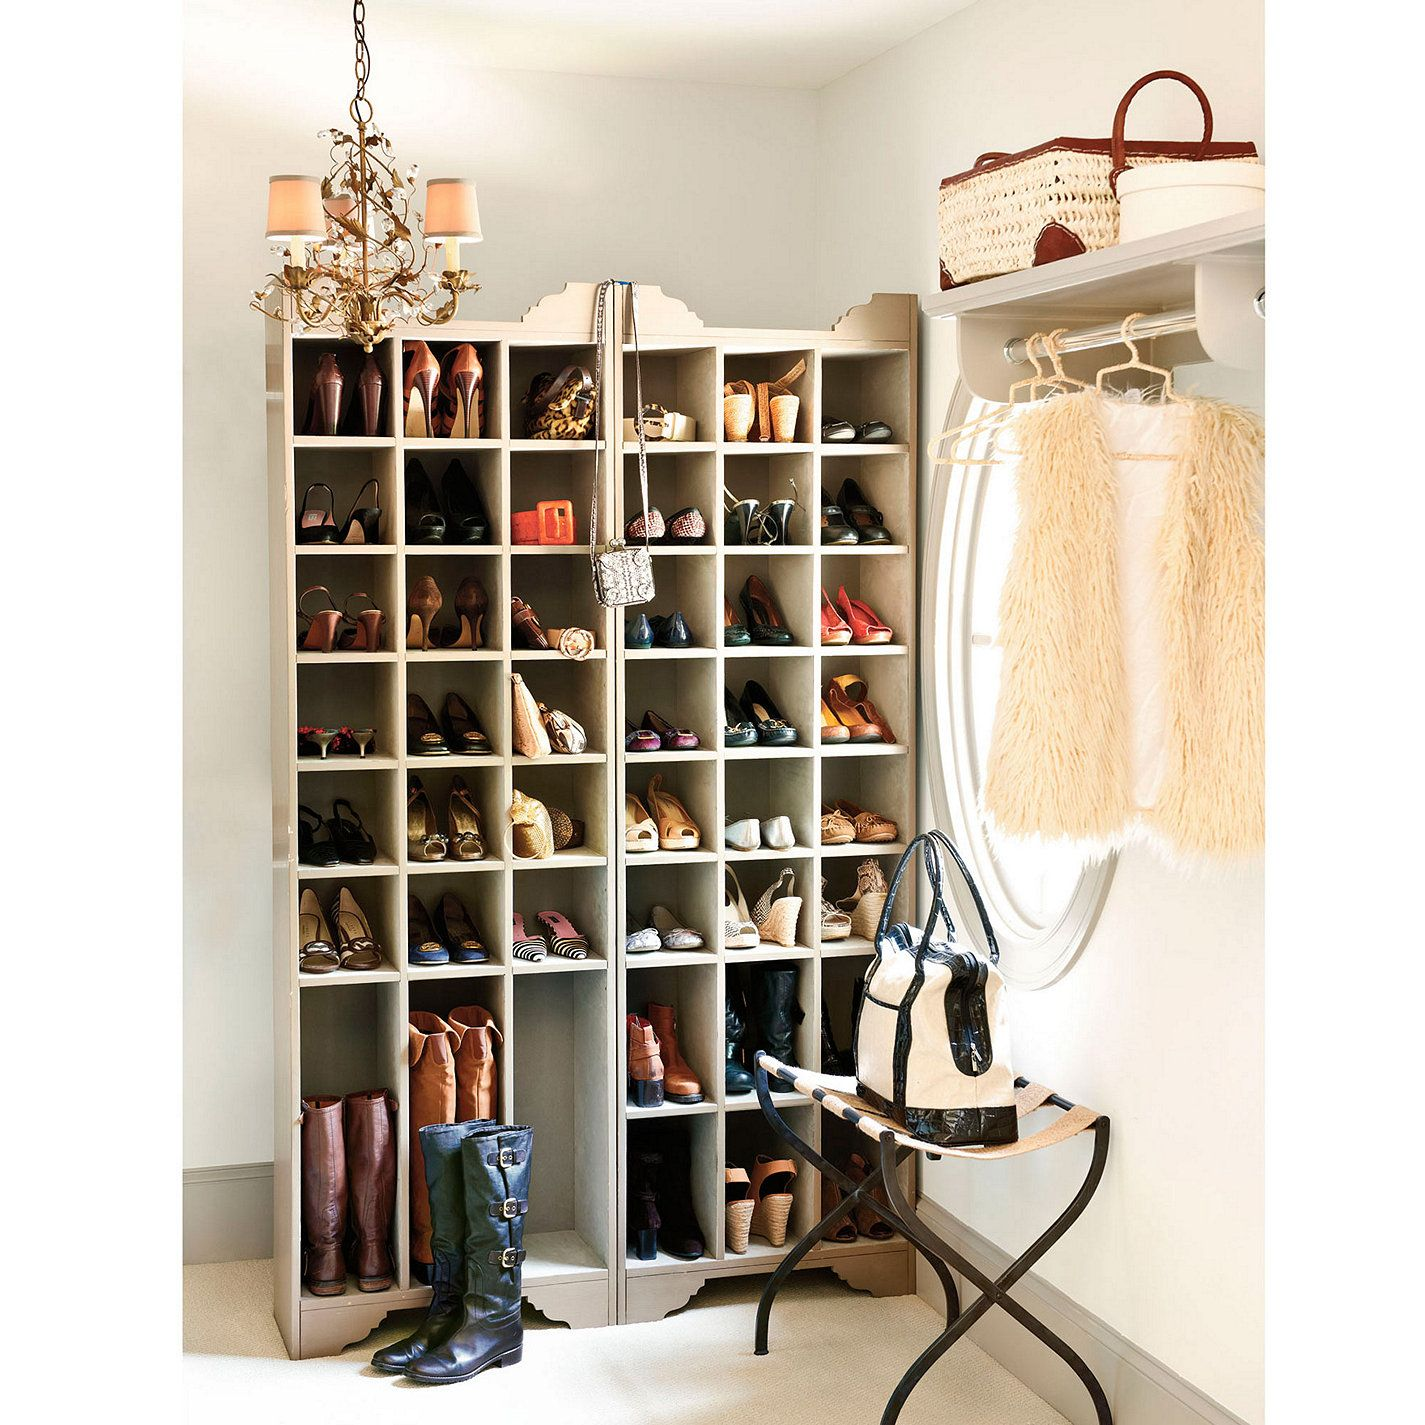 furniture modern entryway shoe and boots storage cabinet design for girls in the corner without door beside window ideas 55 recommended entryway shoe